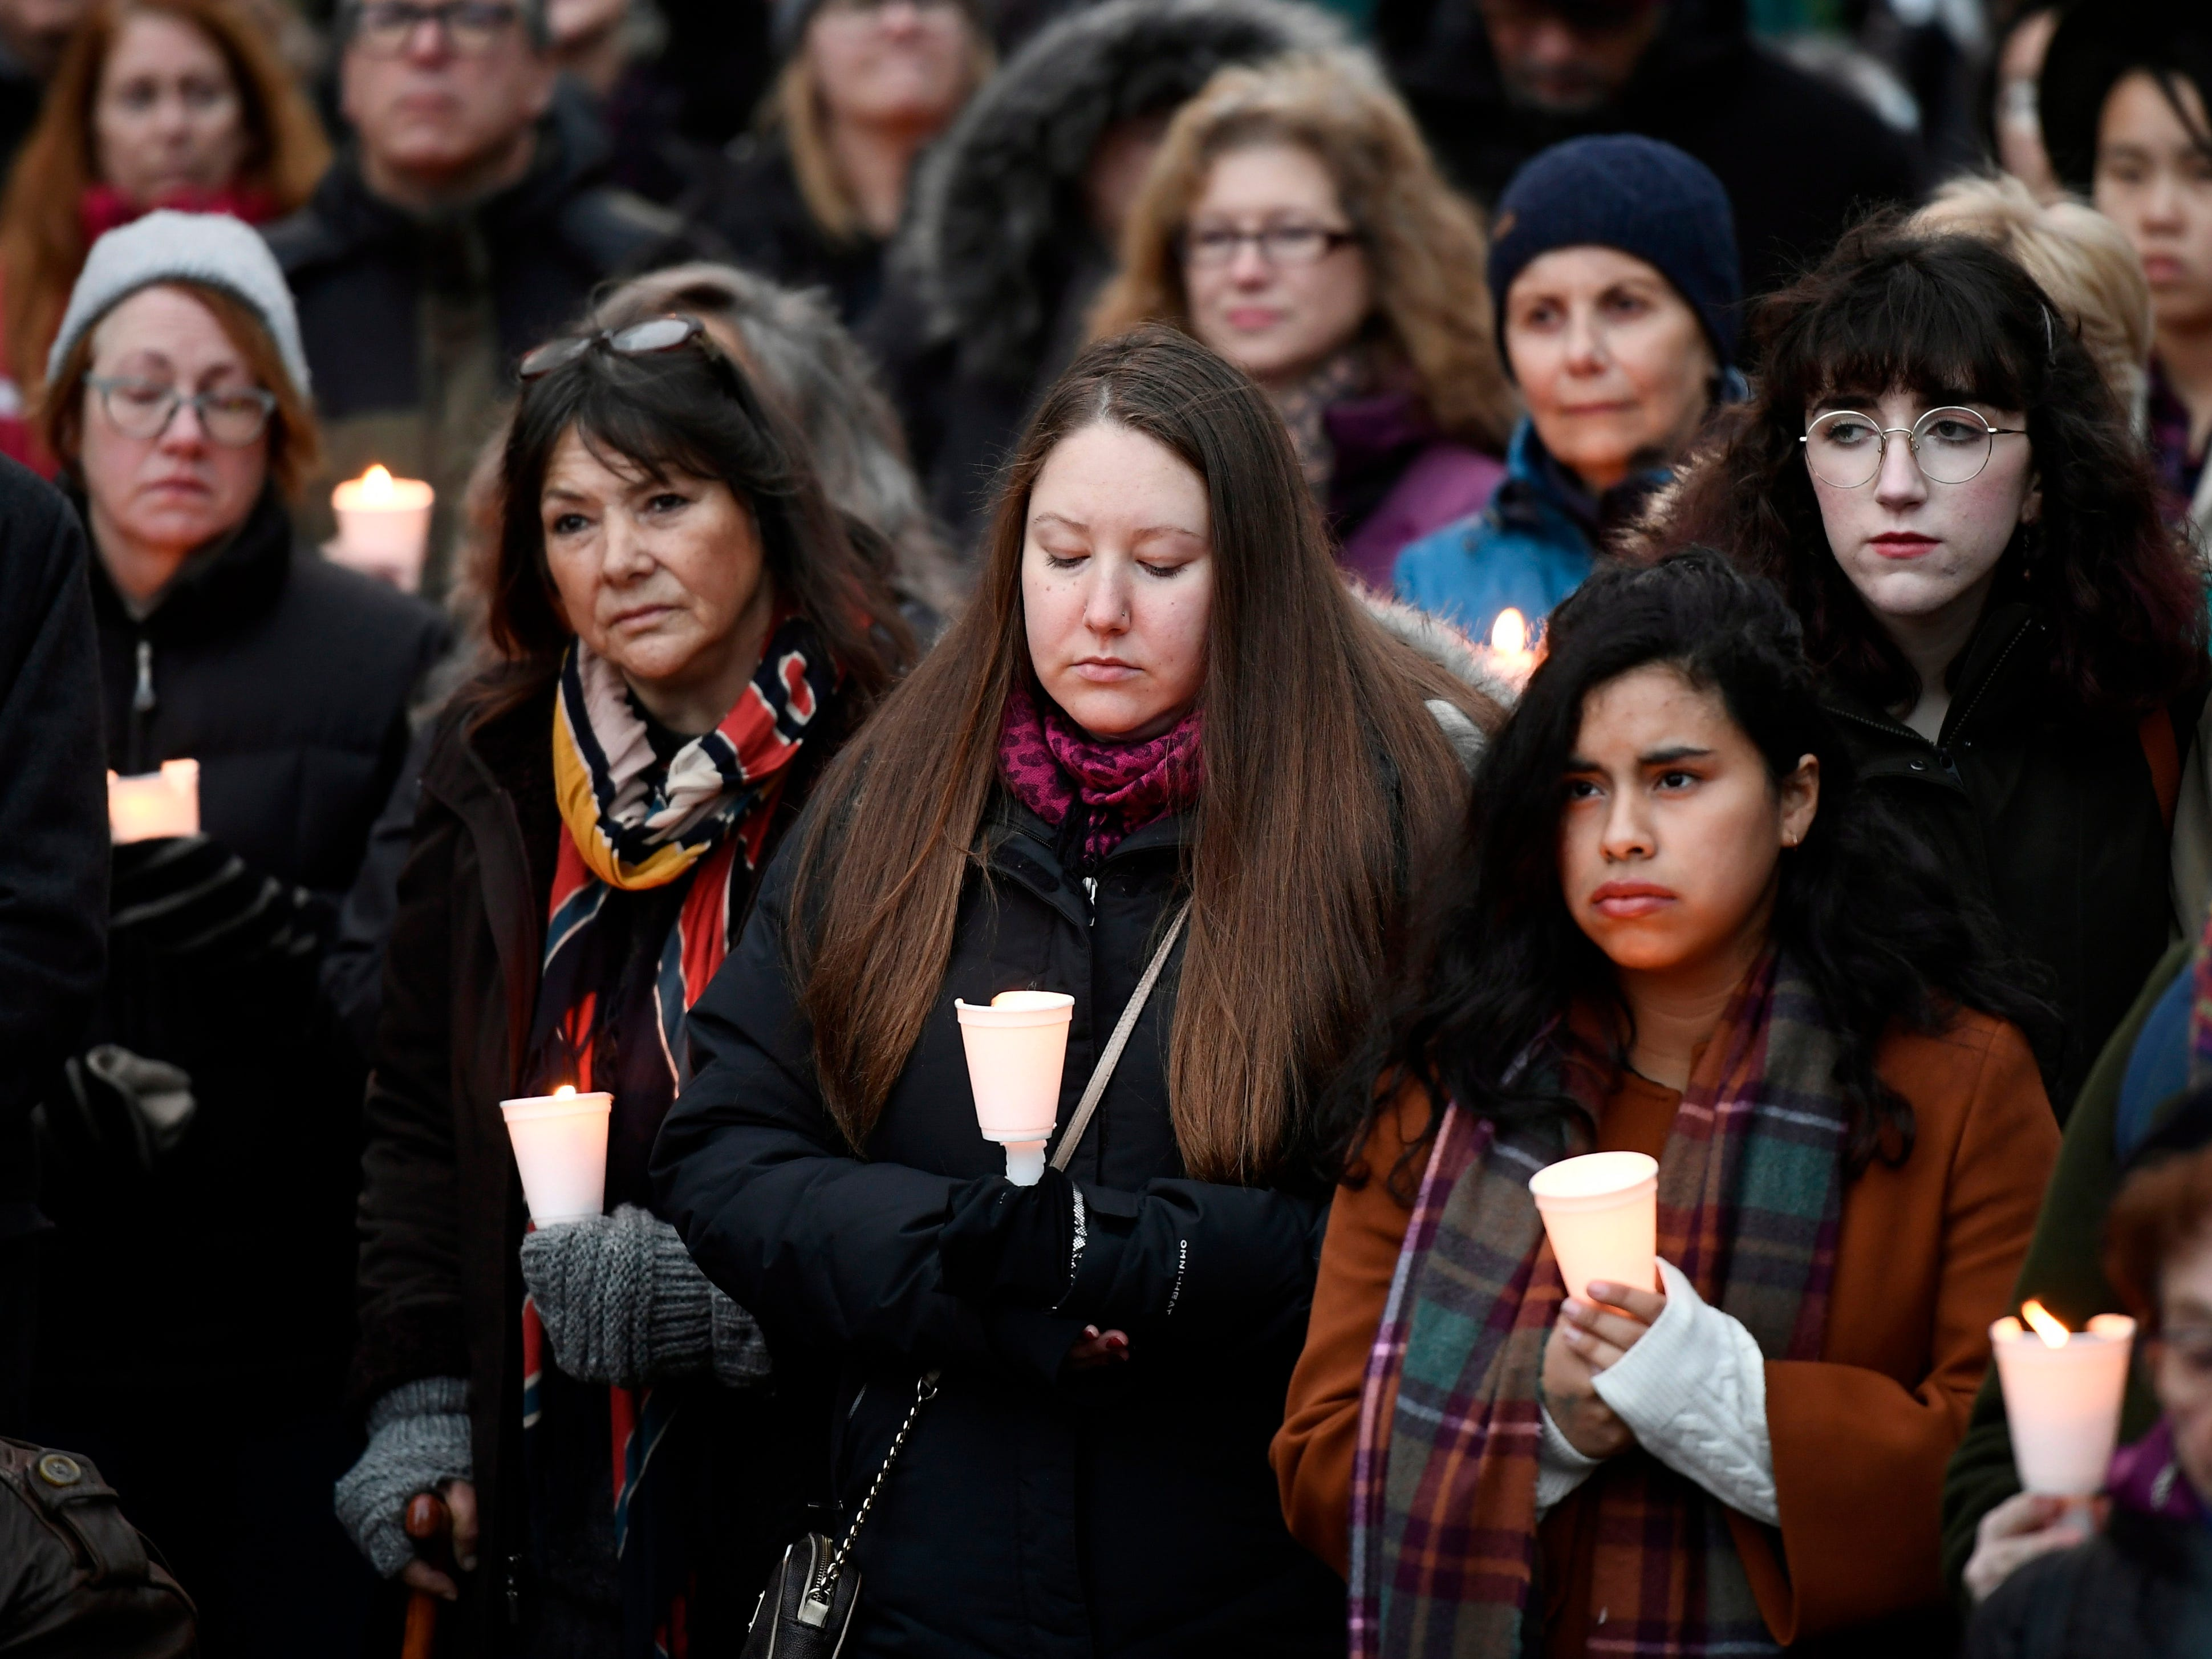 People hold candles during a vigil against anti-Semitism and white supremacy, in response to the shooting at the Tree of Life Congregation synagogue in Pittsburgh, at the Human Rights Monument in Ottawa, Ontario, on Oct. 28, 2018.